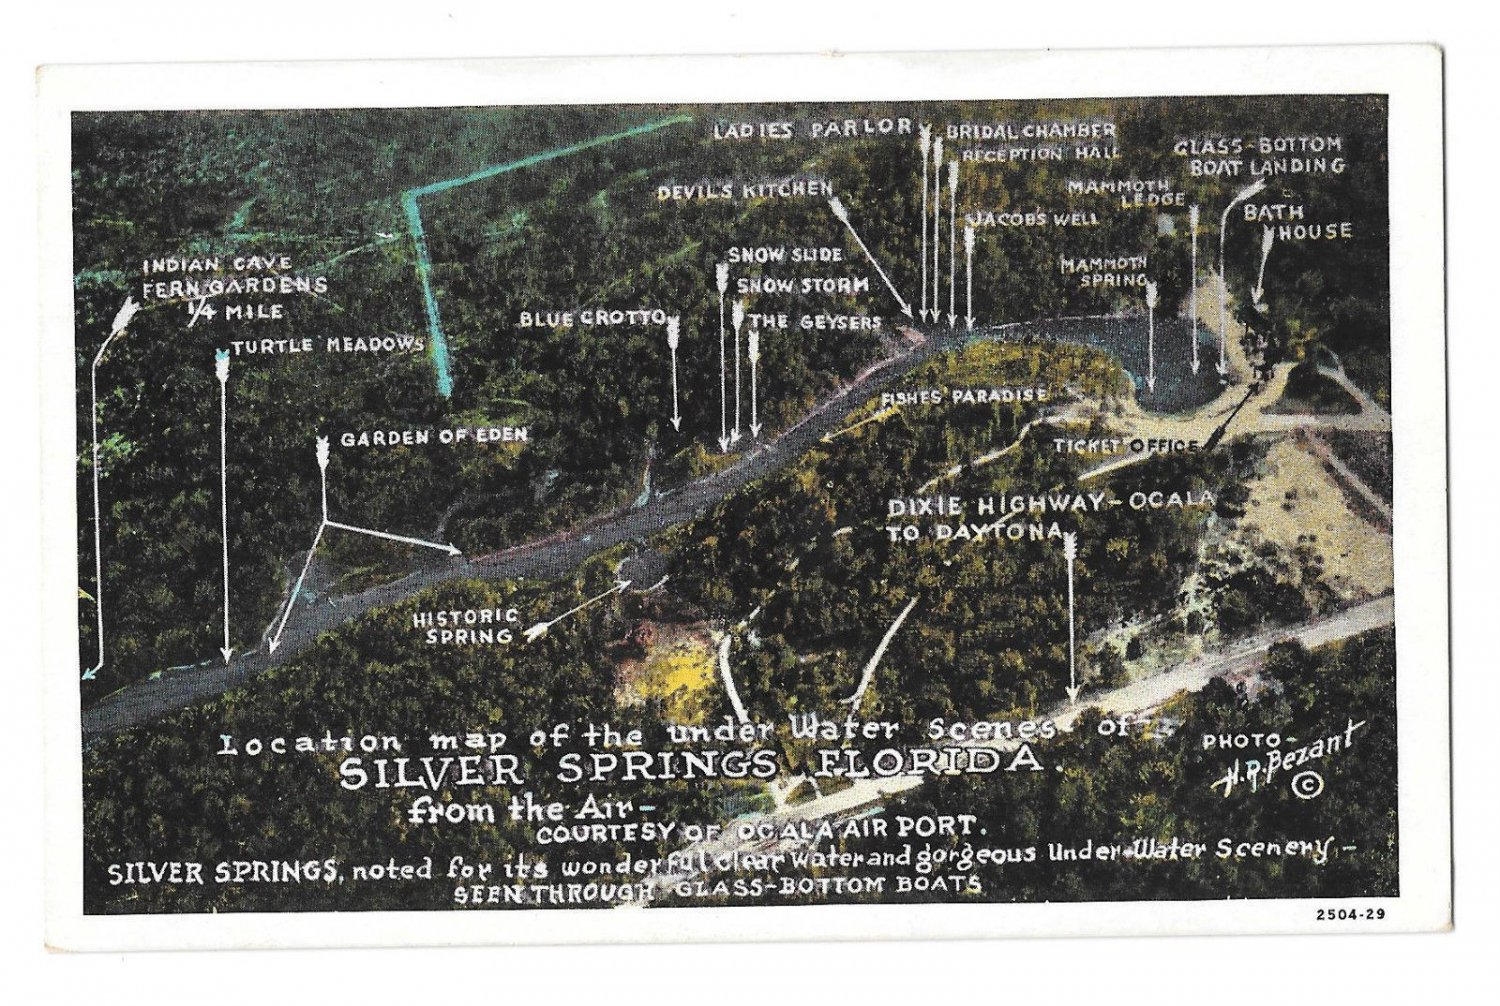 FLorida Silver Springs Aerial View Location Map of Under Water Scenes Vtg Postcard